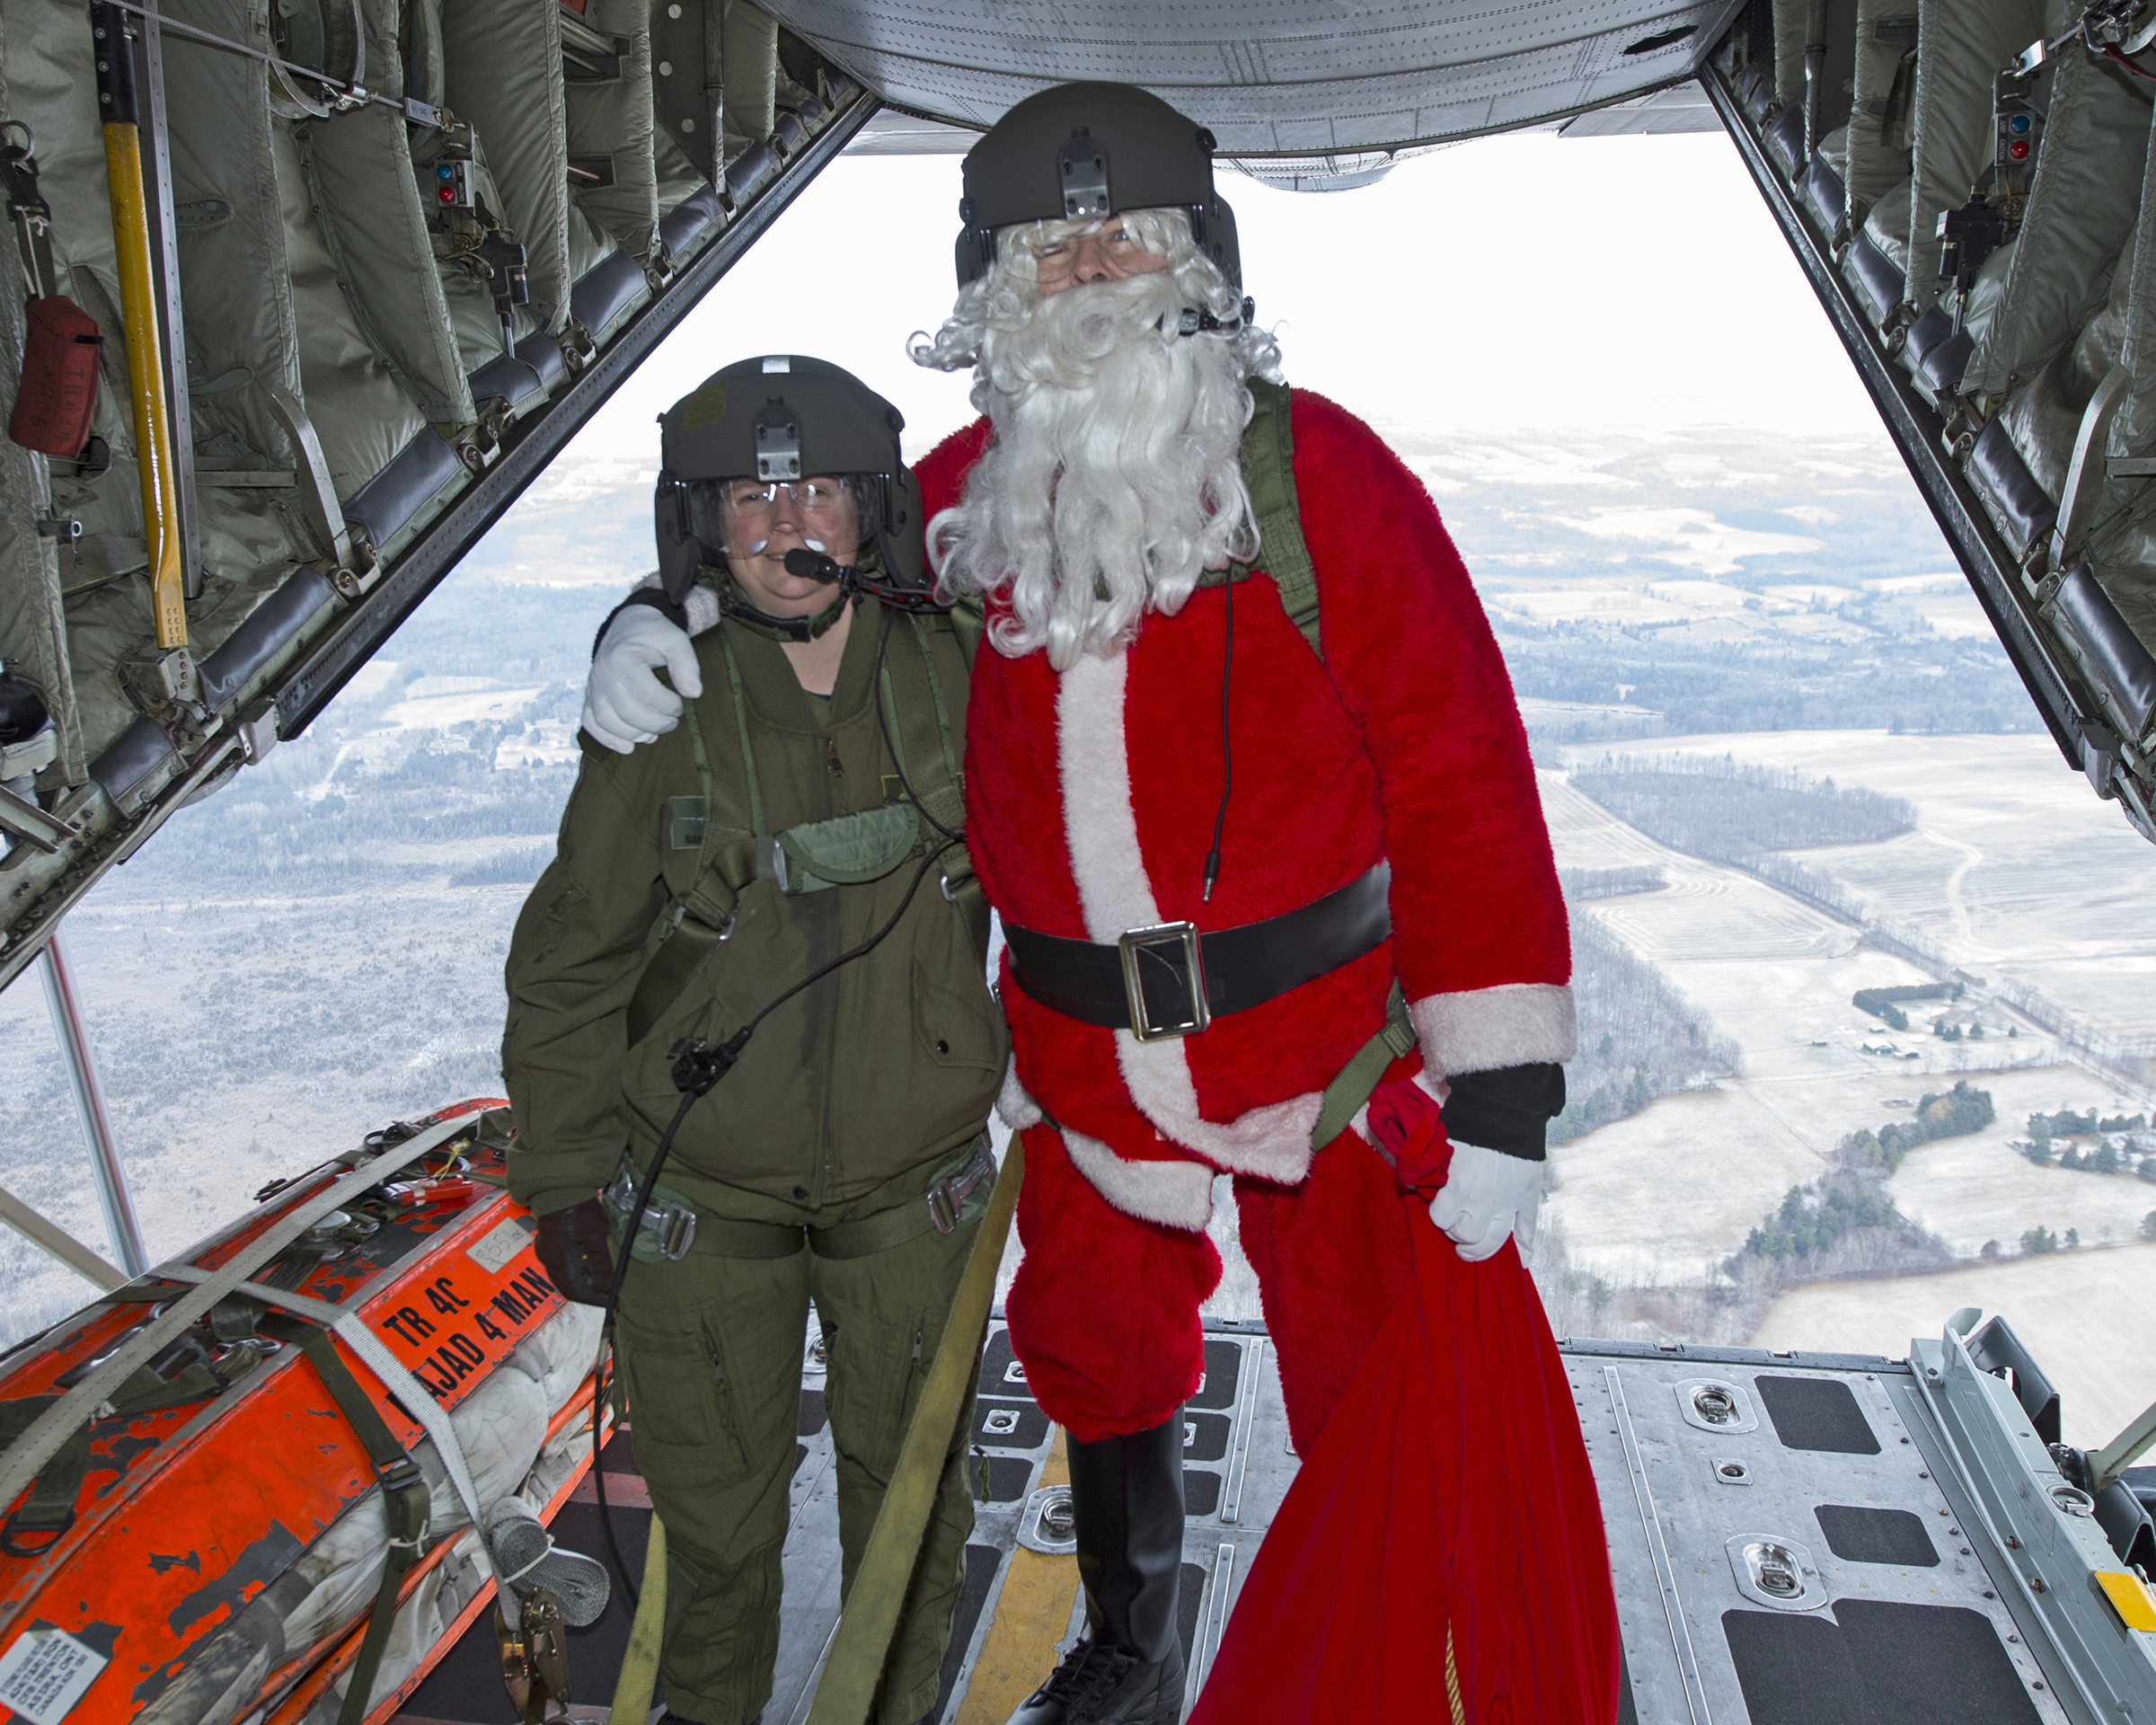 Santa and his newest BFF (Best Flying Friend) loadmaster Corporal Sandy Bridger on the open ramp of a CC-130H Hercules from 424 Transport and Rescue Squadron on December 5, 2018, during Santa's familiarization flight. PHOTO: Leading Seaman Dan Bard, TN09-2018-0441-087